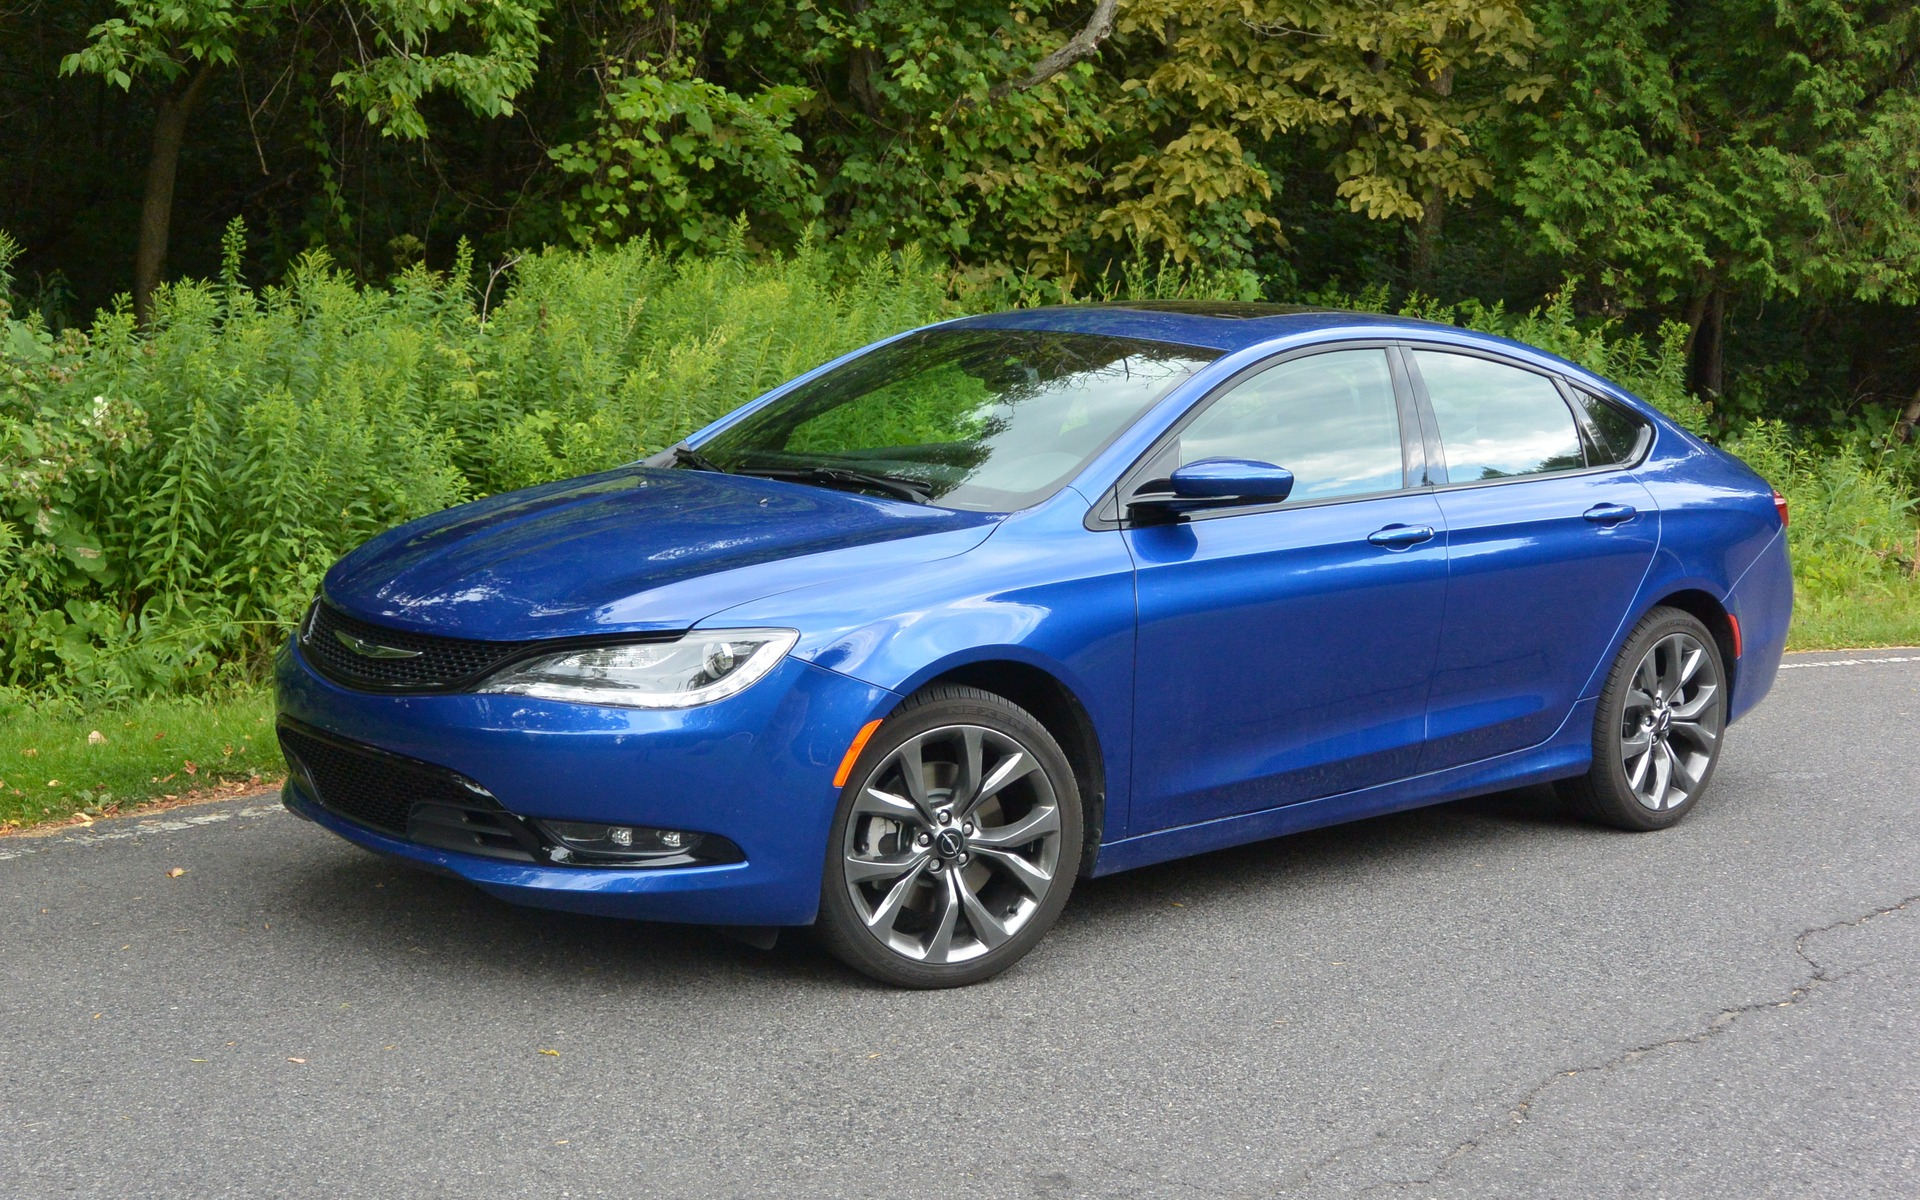 2016 Chrysler 200 18 Widescreen Car Wallpaper